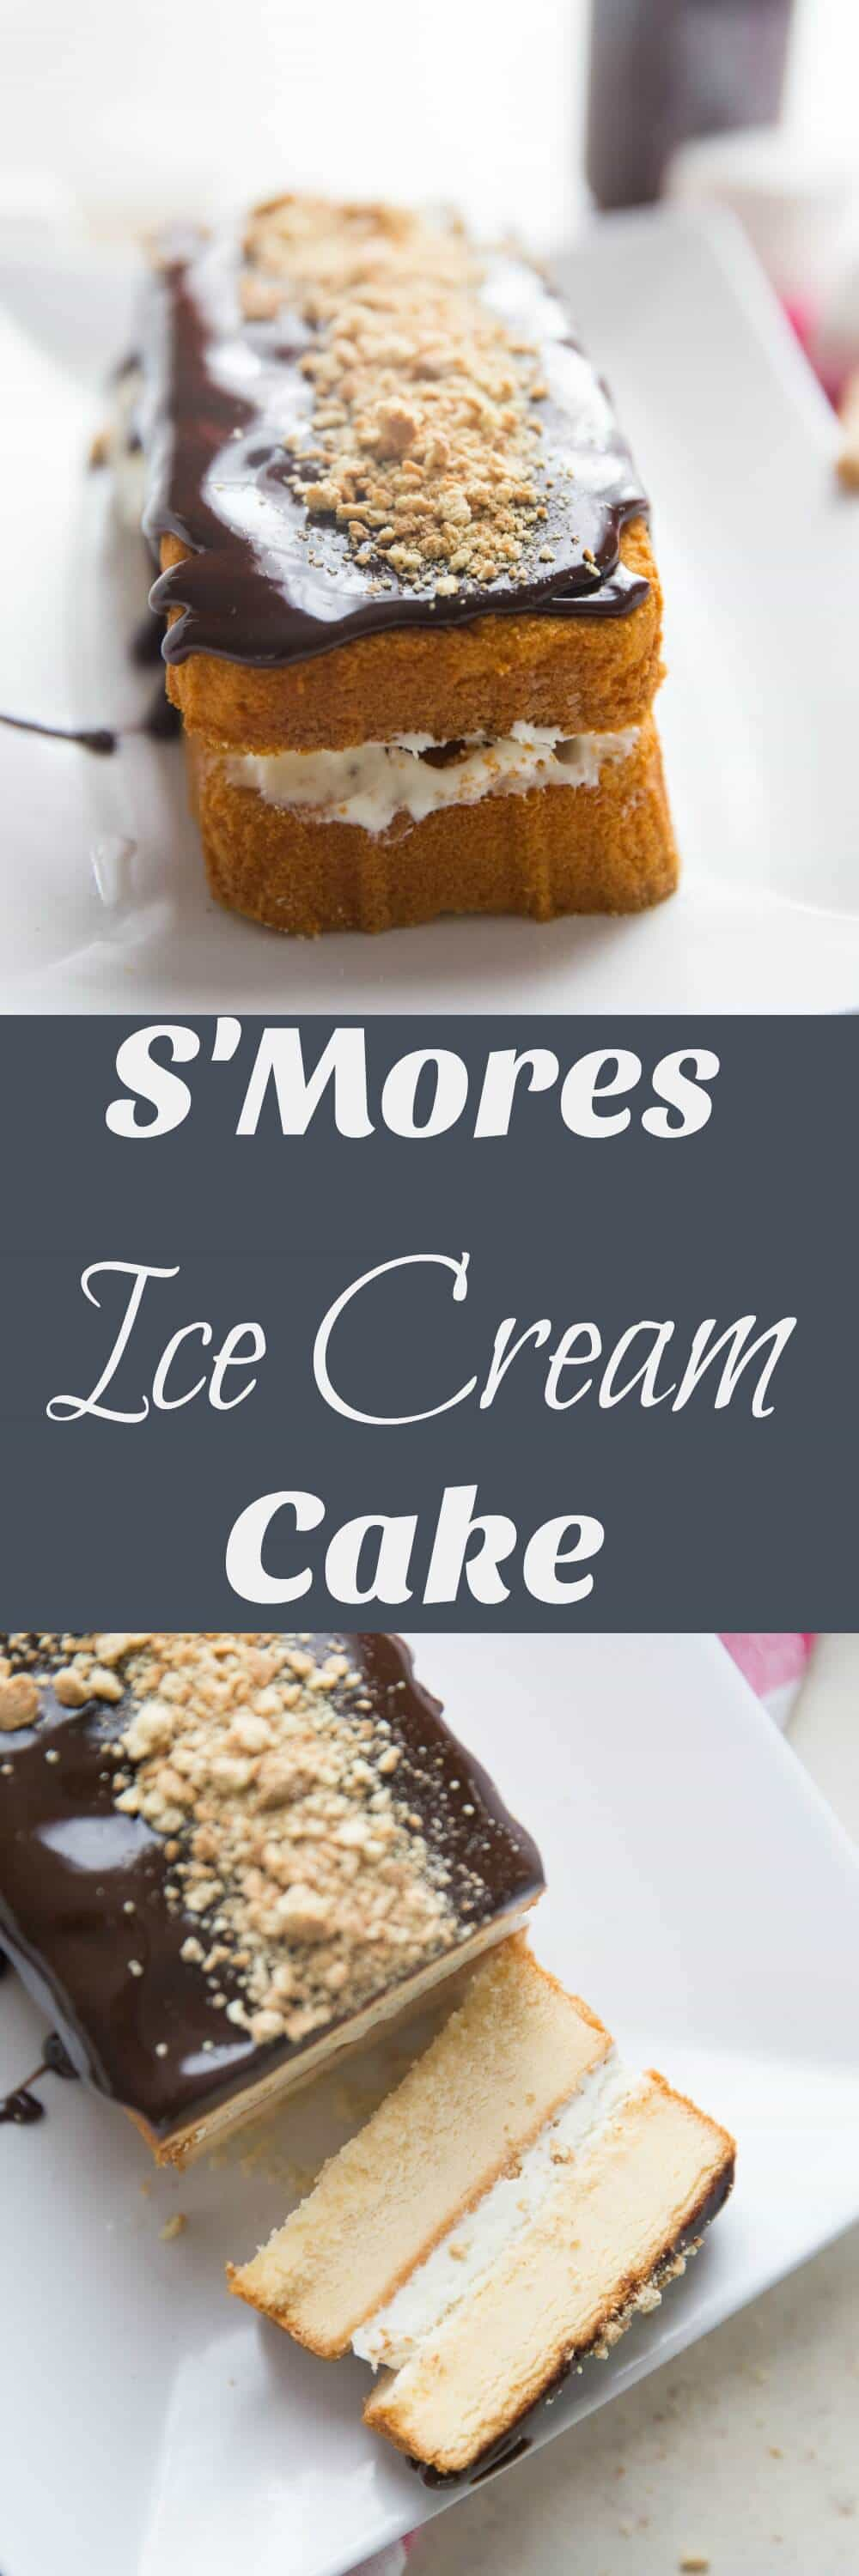 S'mores ice cream cake starts with homemade toasted marshmallow ice cream that gets sandwiched between pound cake halves! If that not's enough, chocolate sauce and graham cracker crumbs help complete this summertime masterpiece!